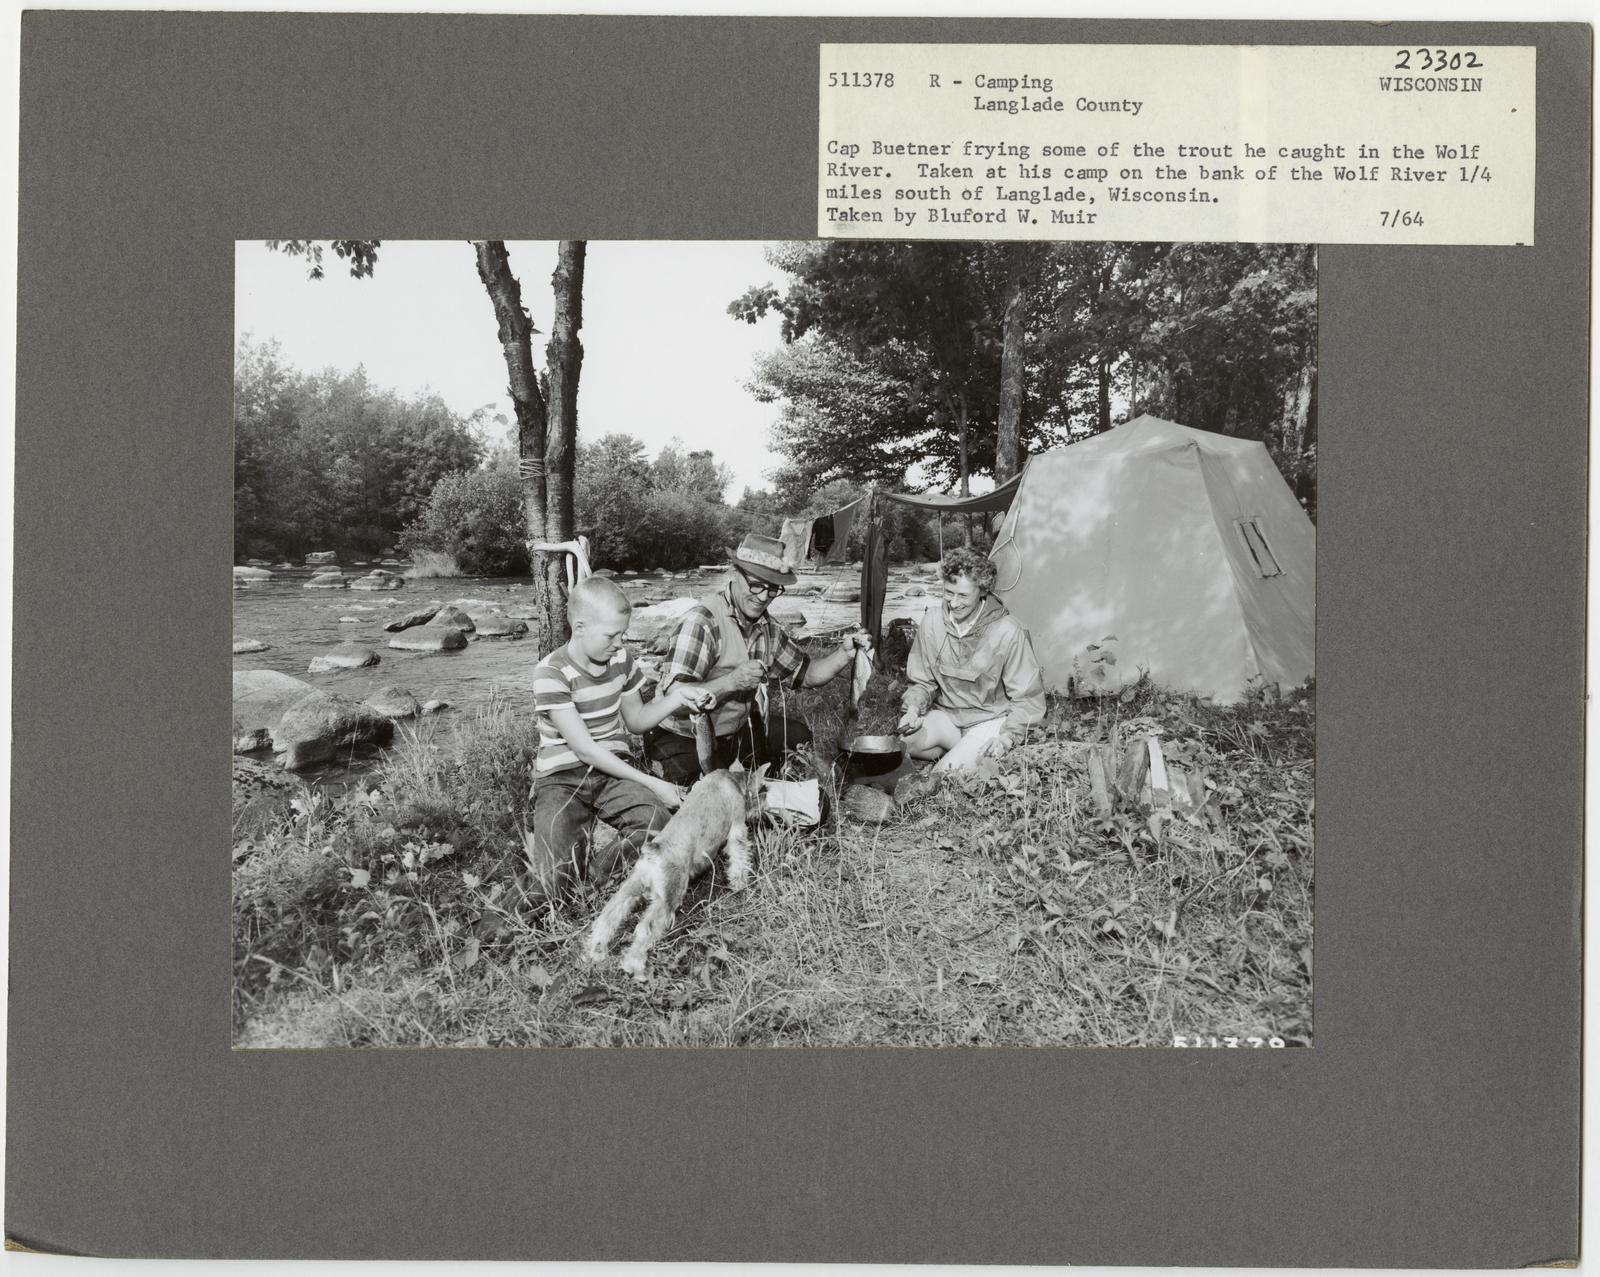 Camping and Picnicking - Wisconsin